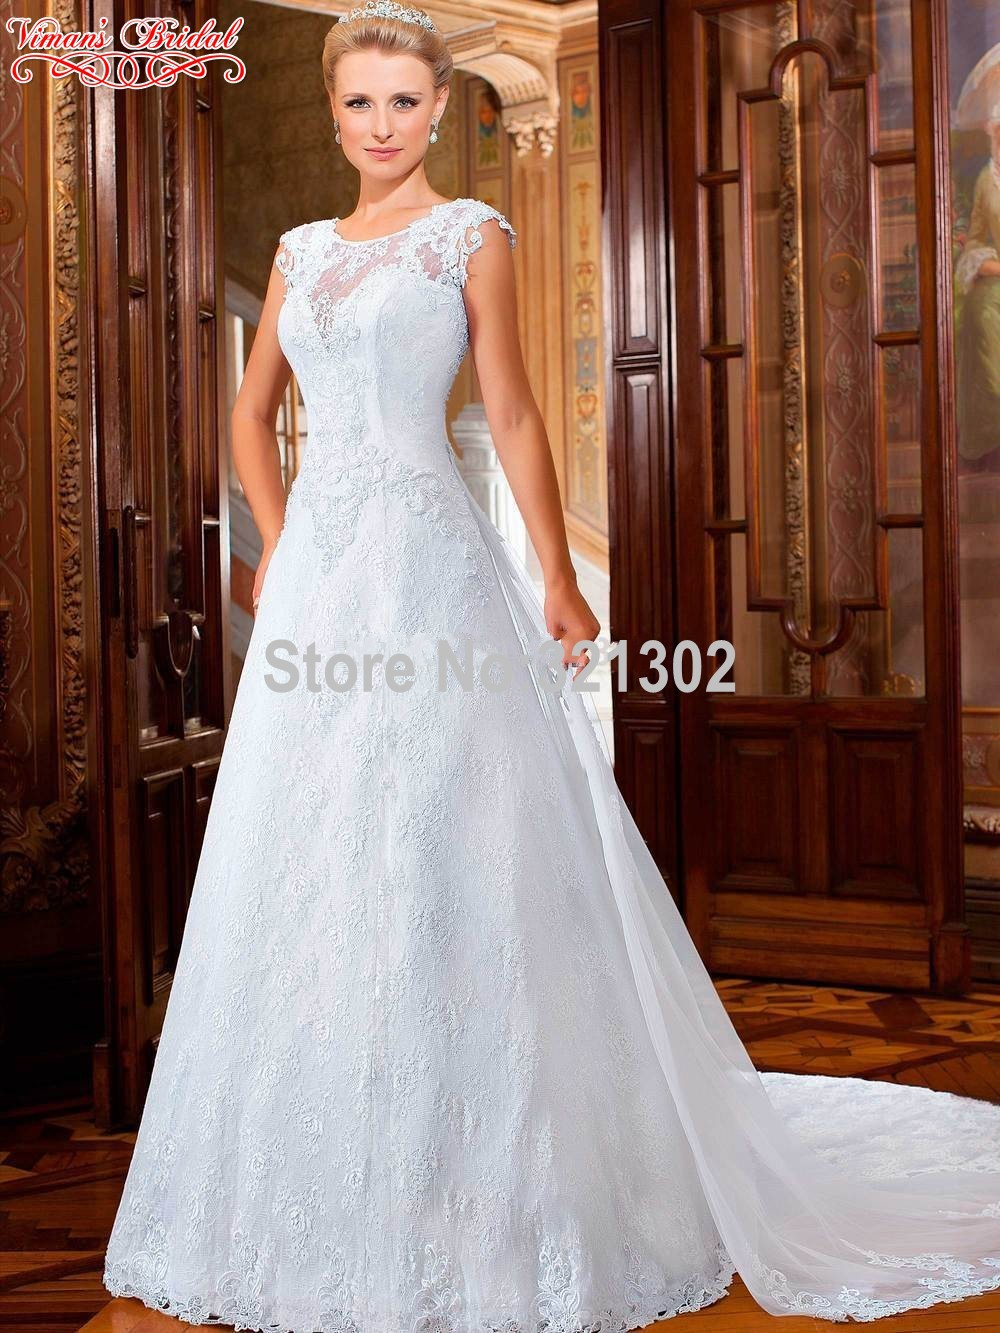 wedding gowns white 2015 button sleeveless o veck brush train floor length wedding dresses newest expensive beautiful ac96